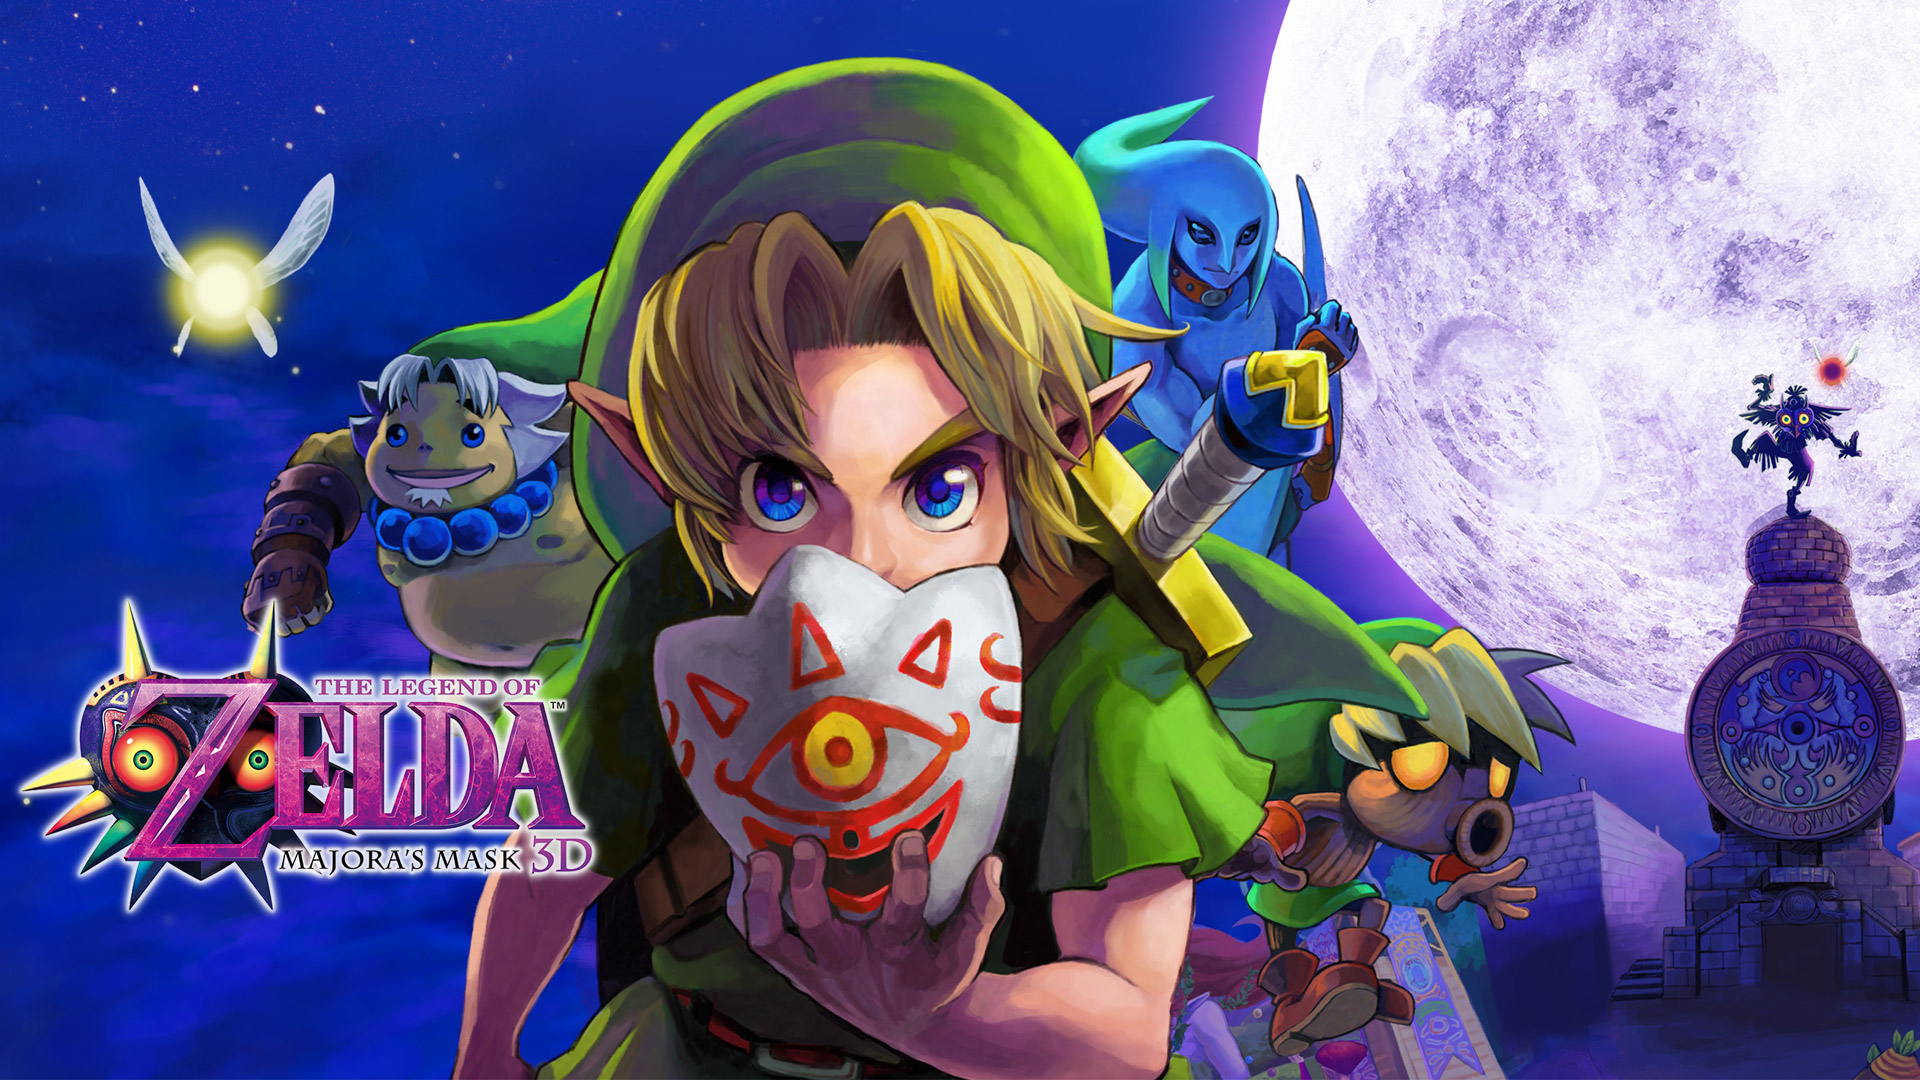 Majora S Mask Desktop Background: Majora S Mask Wallpaper